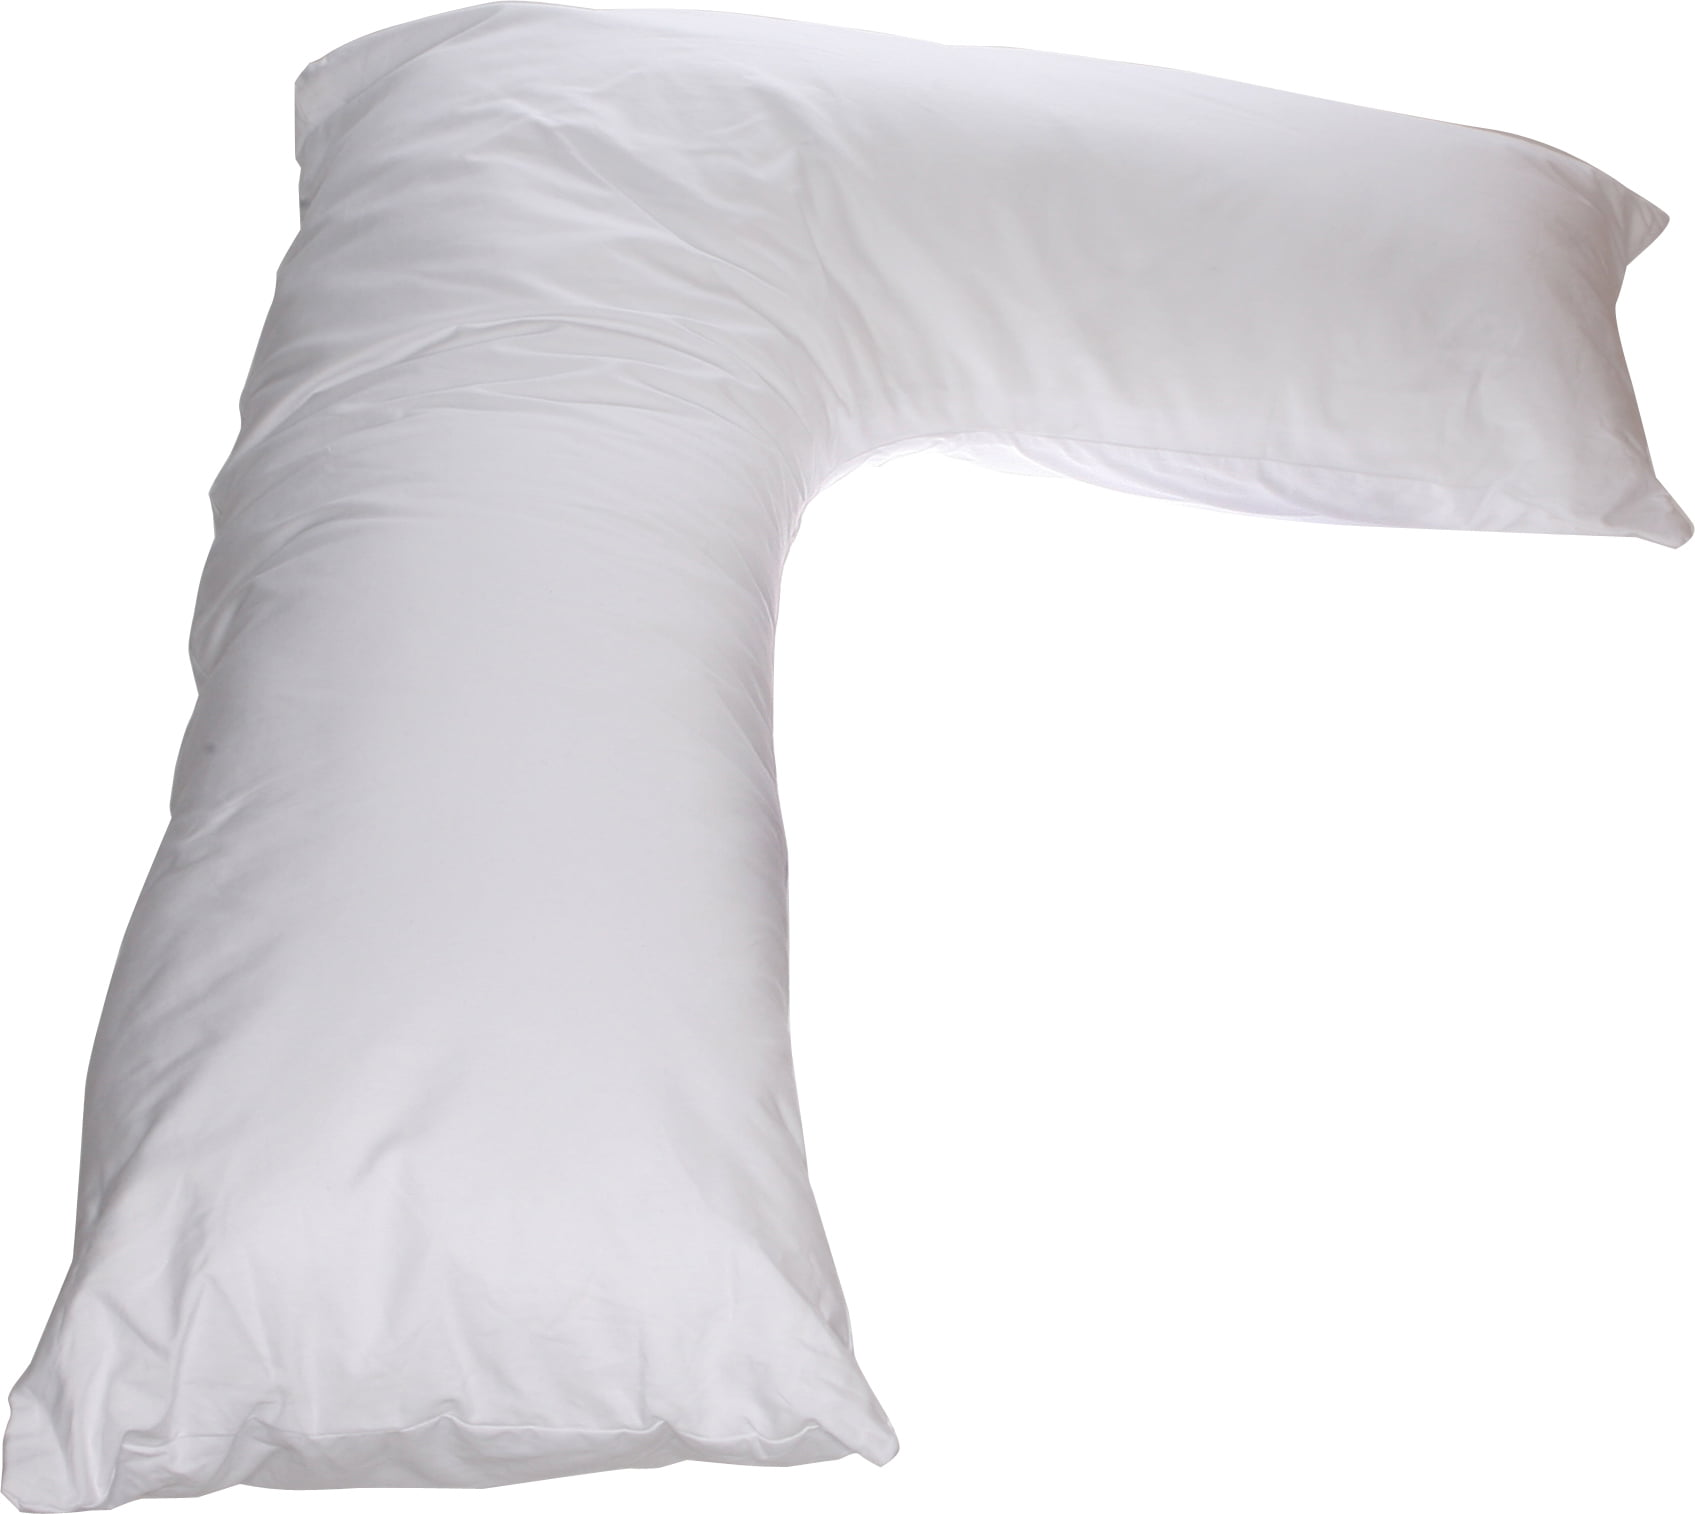 """Deluxe Comfort """"L"""" Side Sleeper Body Pillow (36"""" x 24"""") � Prenatal Pregnancy Pillow �... by Living Healthy Products"""